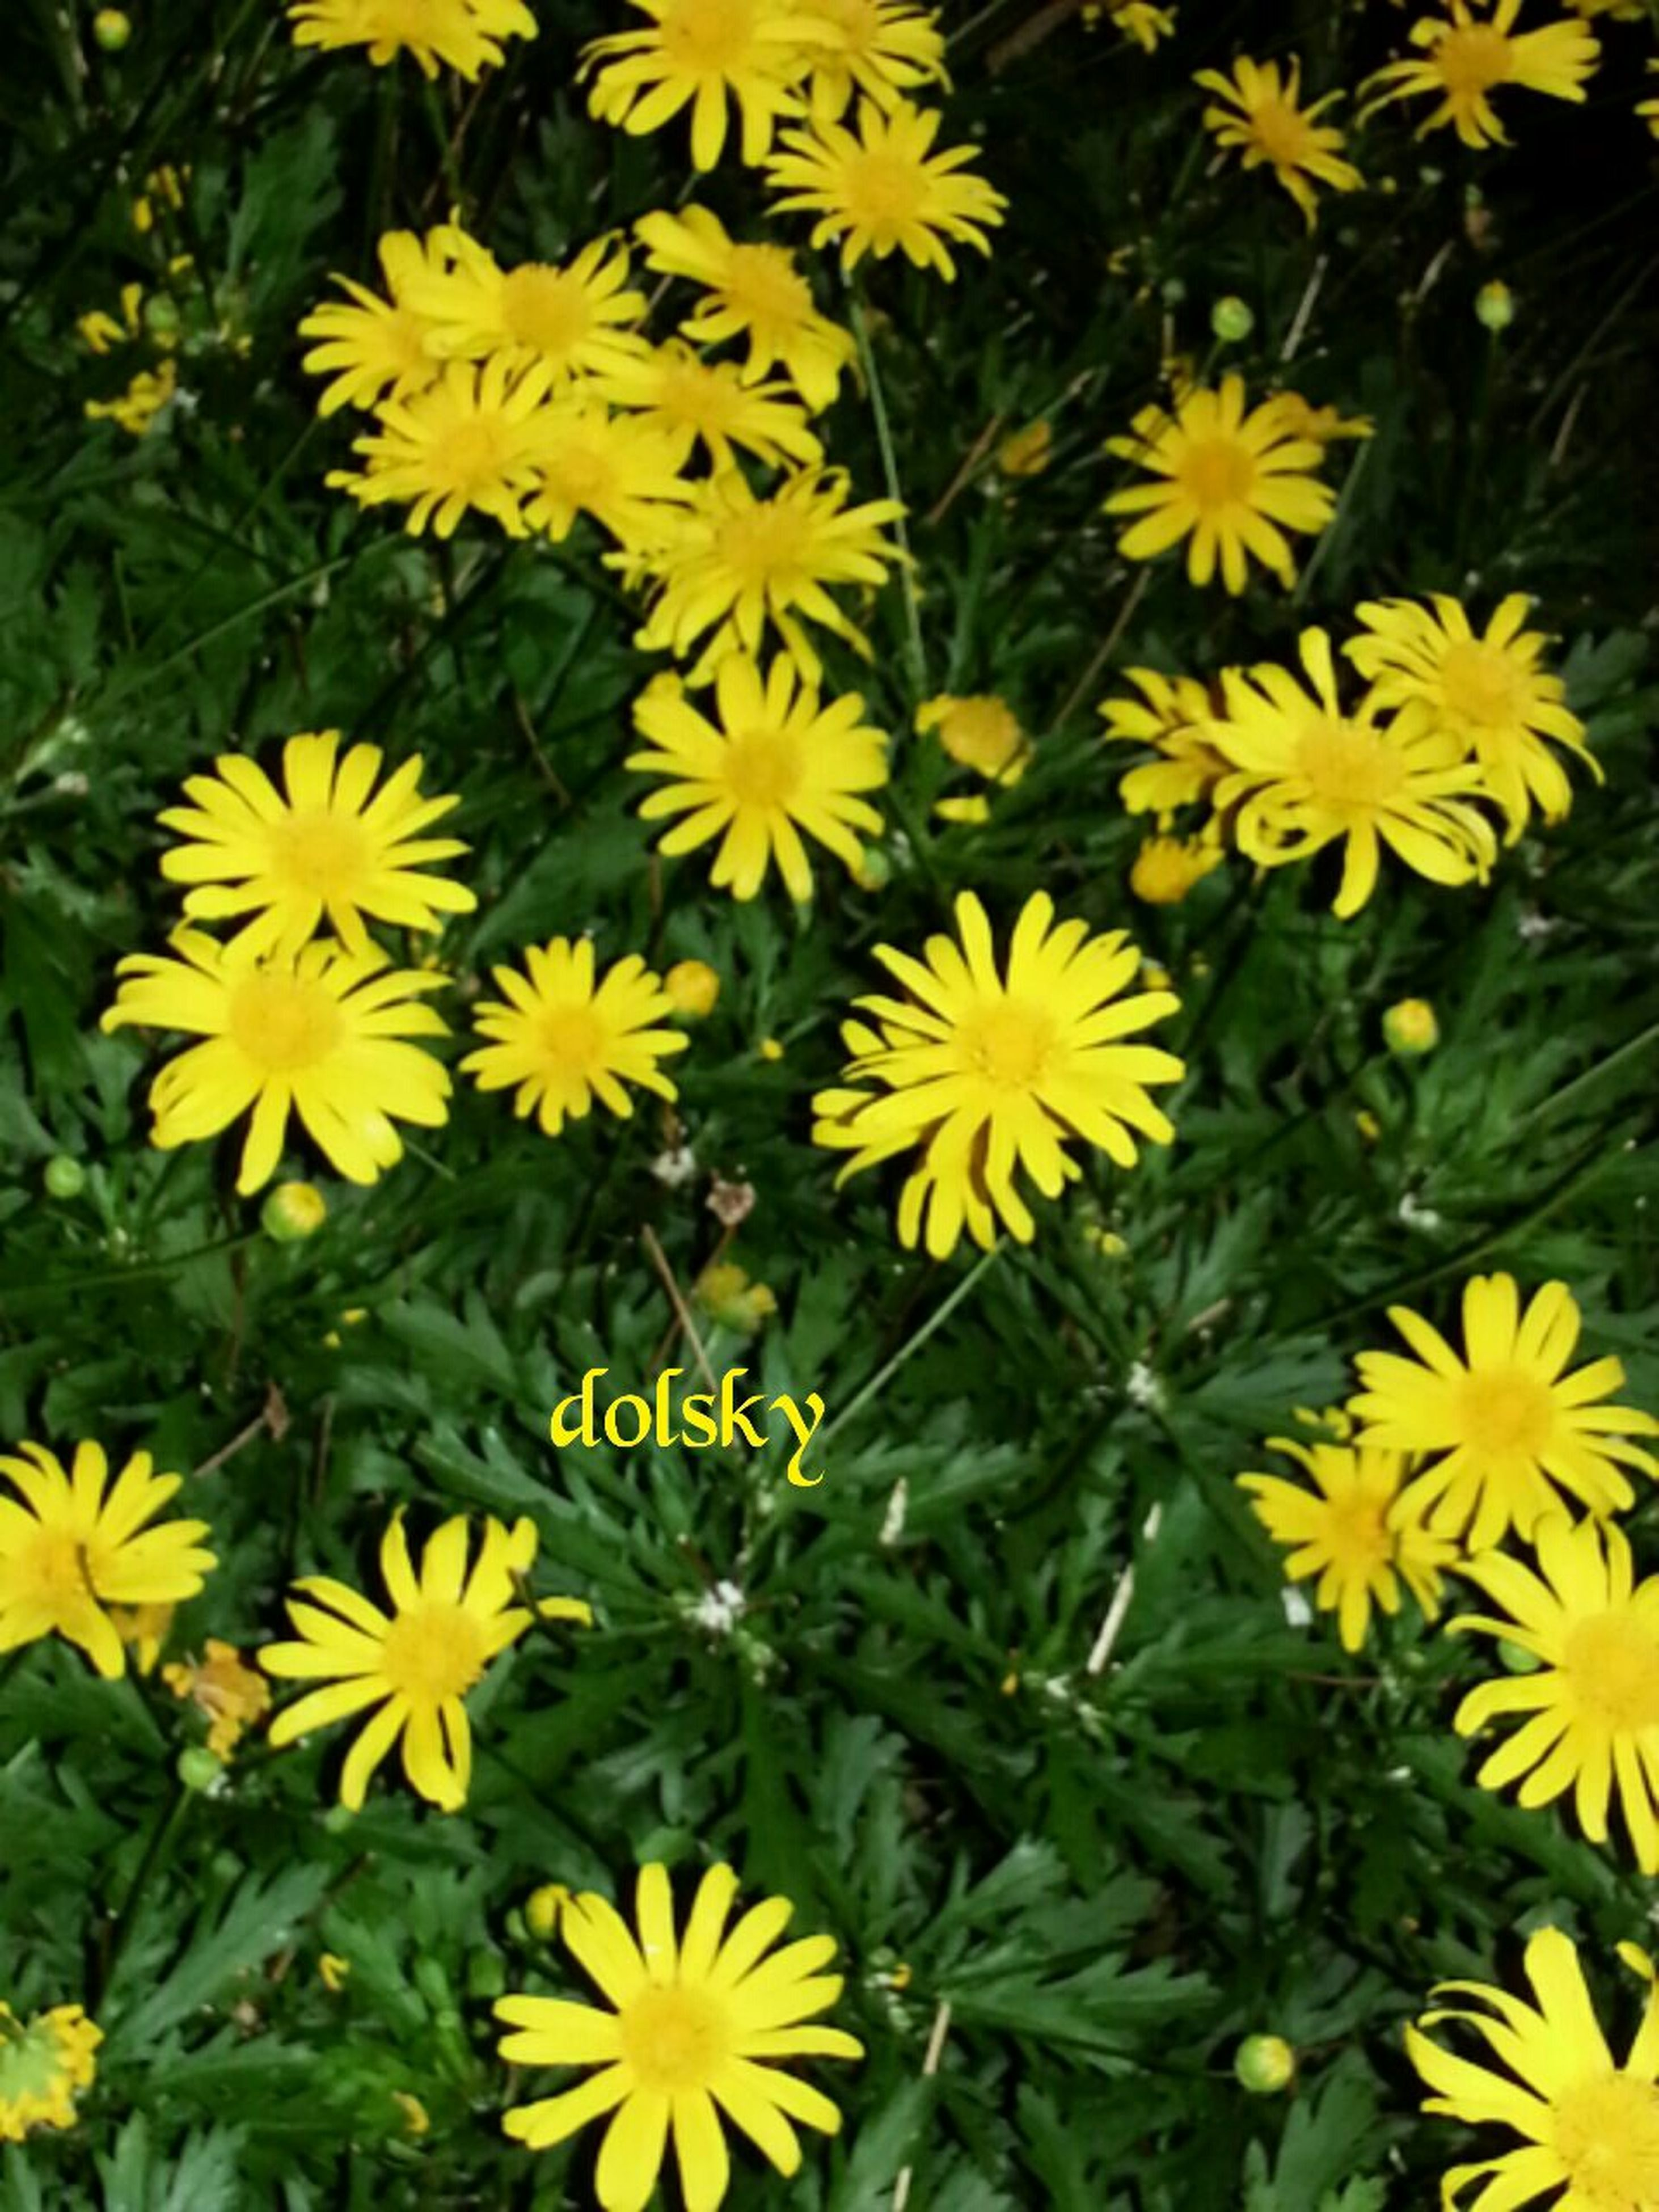 flower, yellow, freshness, petal, fragility, growth, flower head, beauty in nature, blooming, plant, nature, field, high angle view, in bloom, green color, daisy, close-up, outdoors, leaf, day